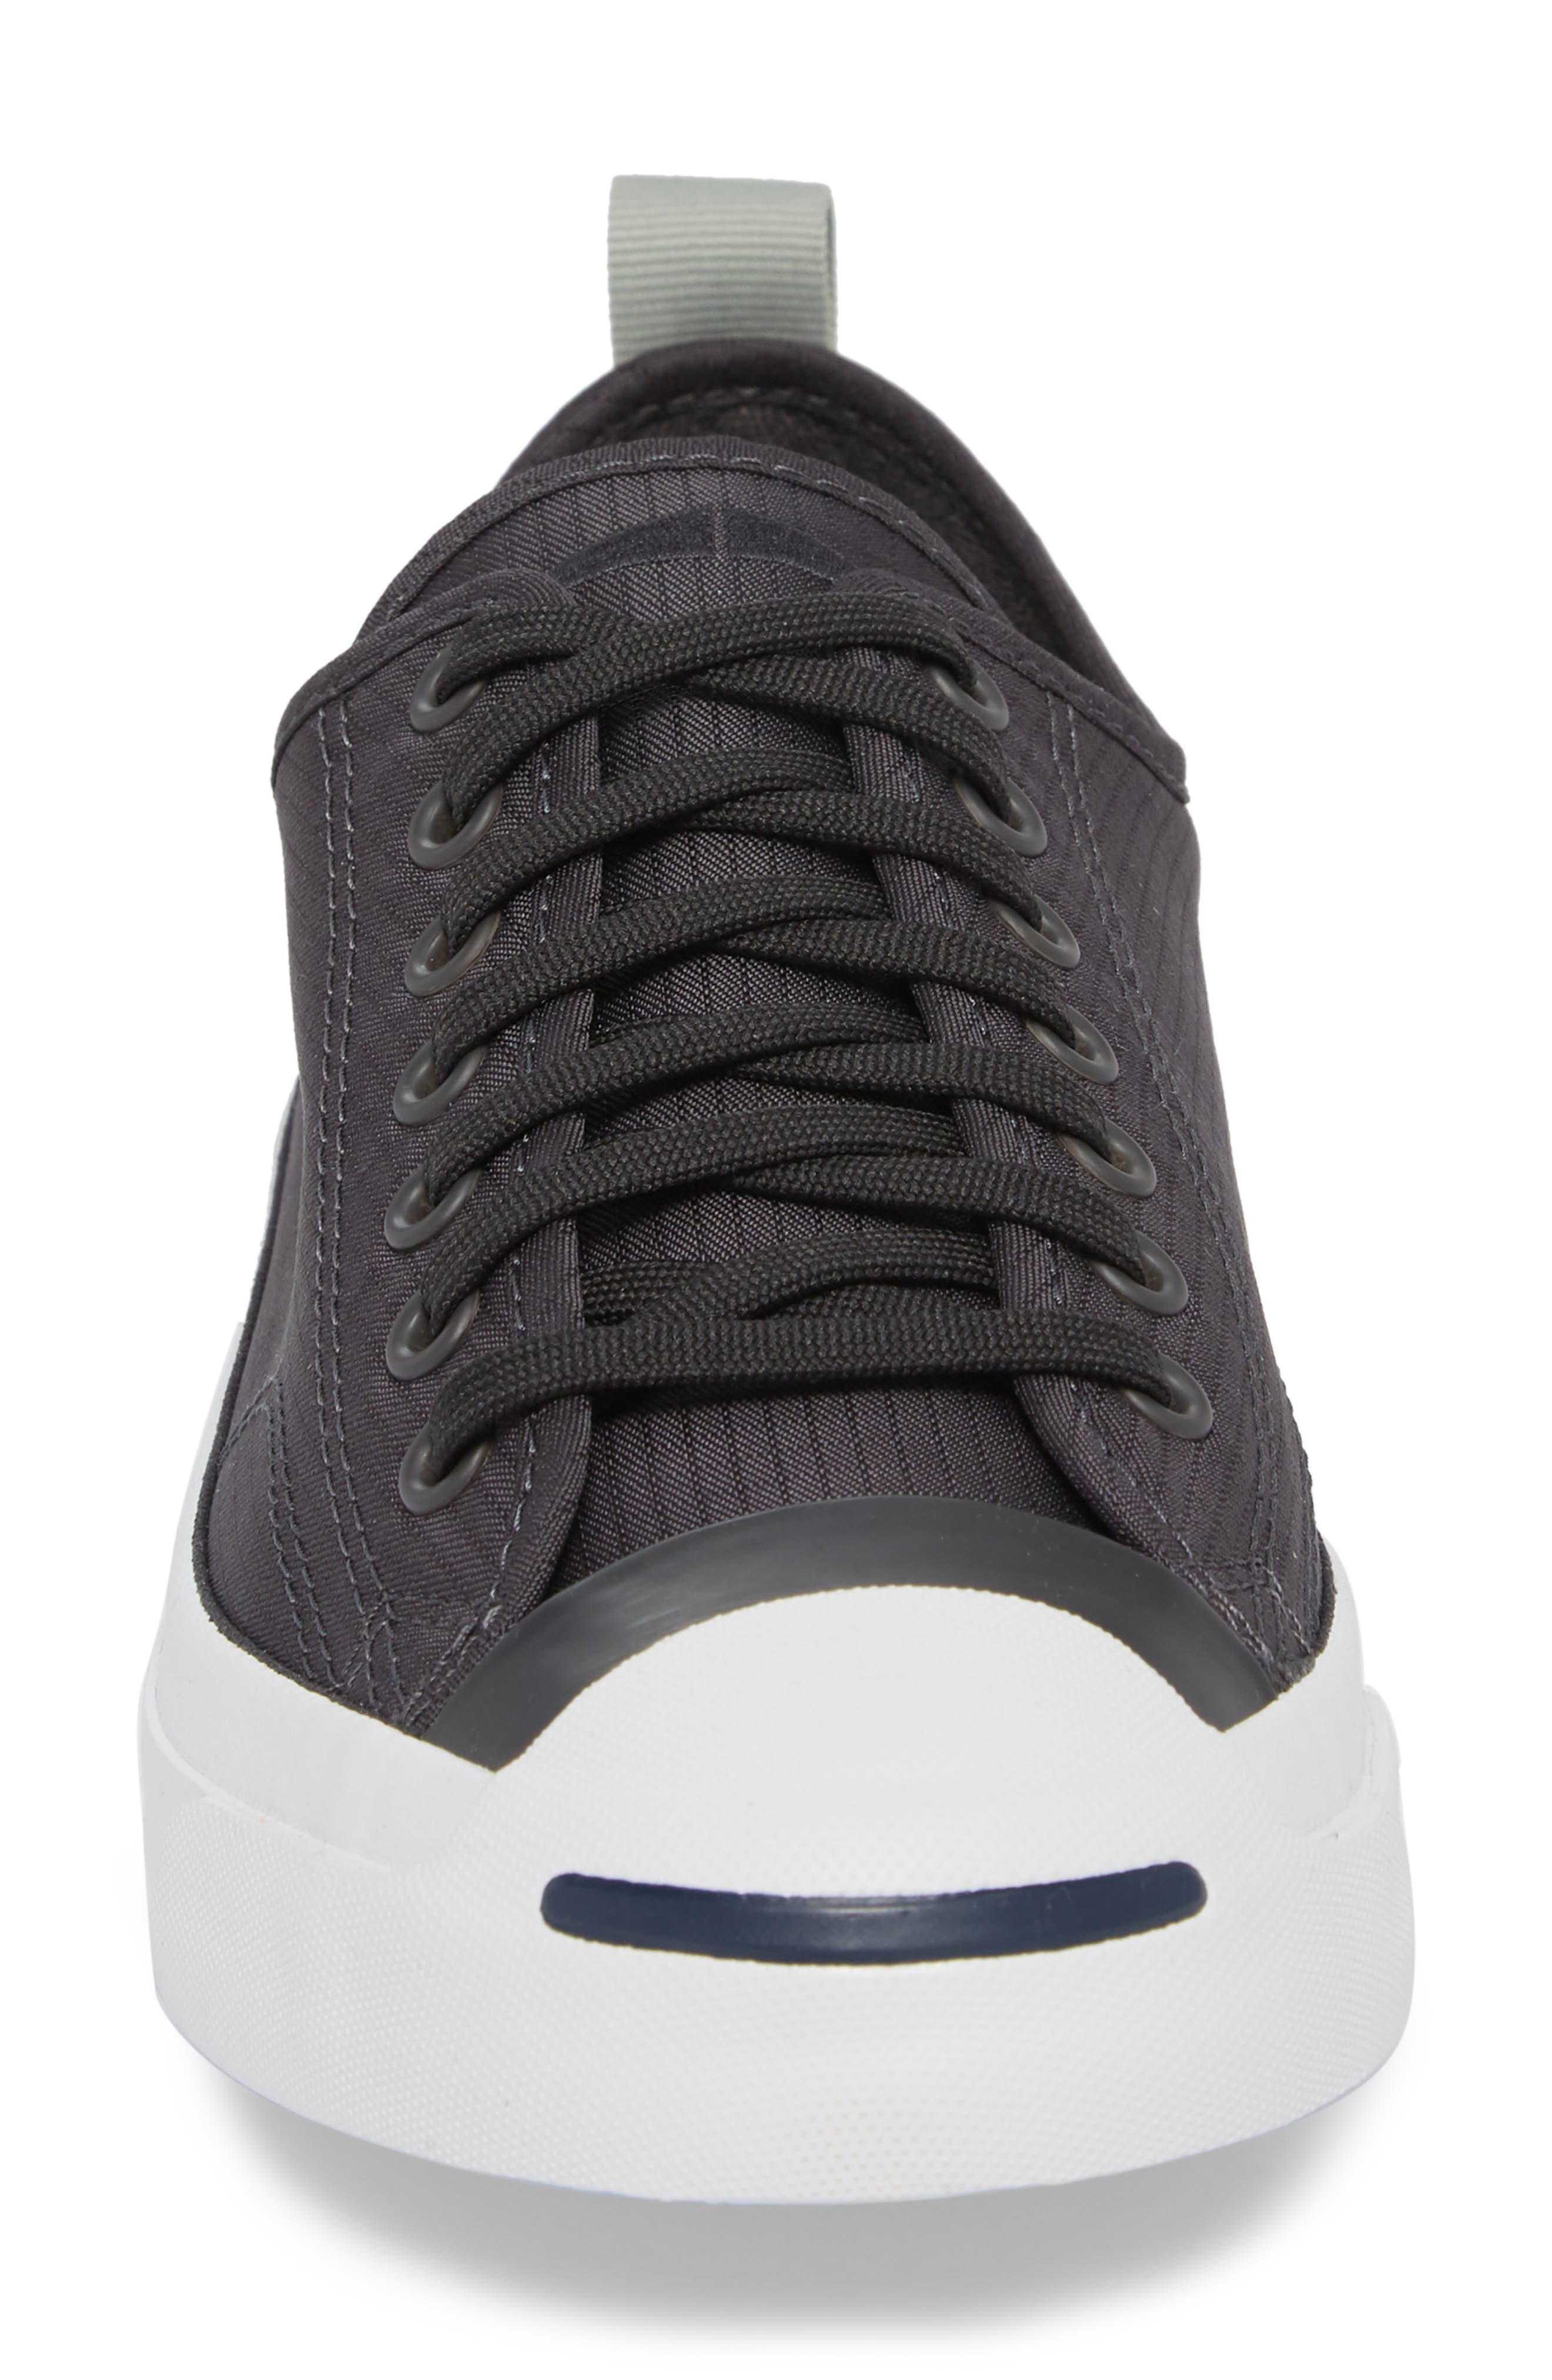 Jack Purcell Ripstop Sneaker,                             Alternate thumbnail 7, color,